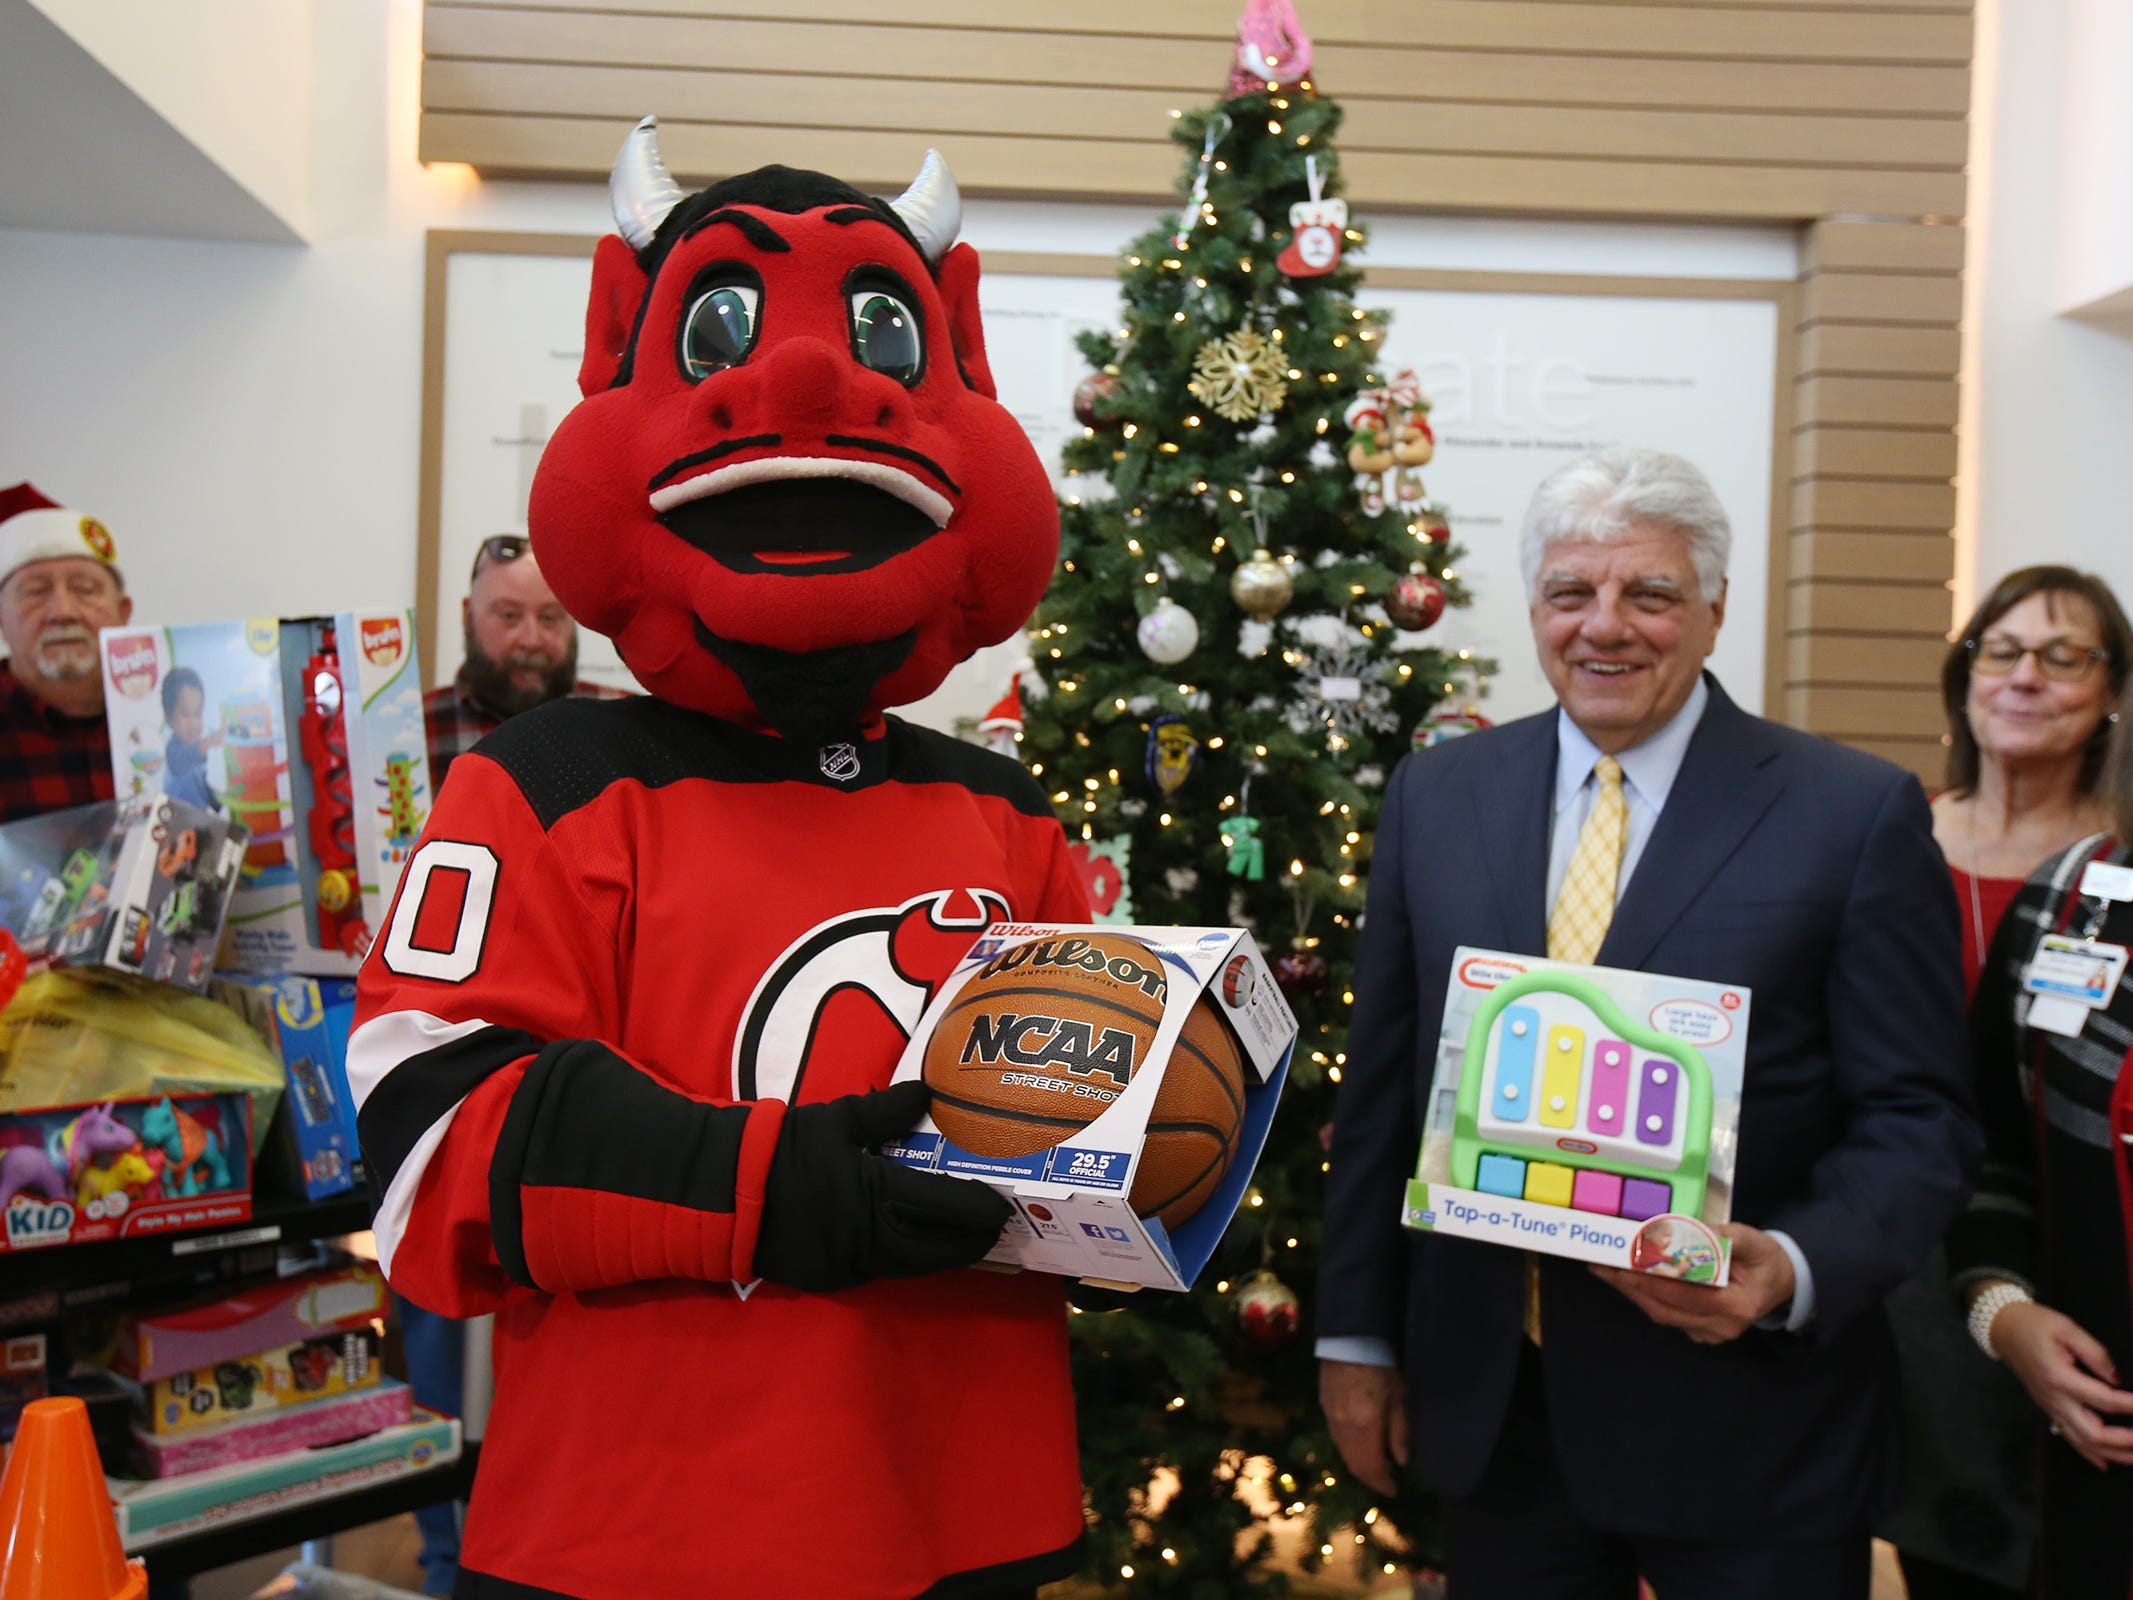 The New Jersey Devils' mascot visits the Monmouth Medical Center Southern Campus and loads donated toys into a police car with members of the Lakewood PBA and Lakewood Police Department in Lakewood, NJ Monday, December 17, 2018.